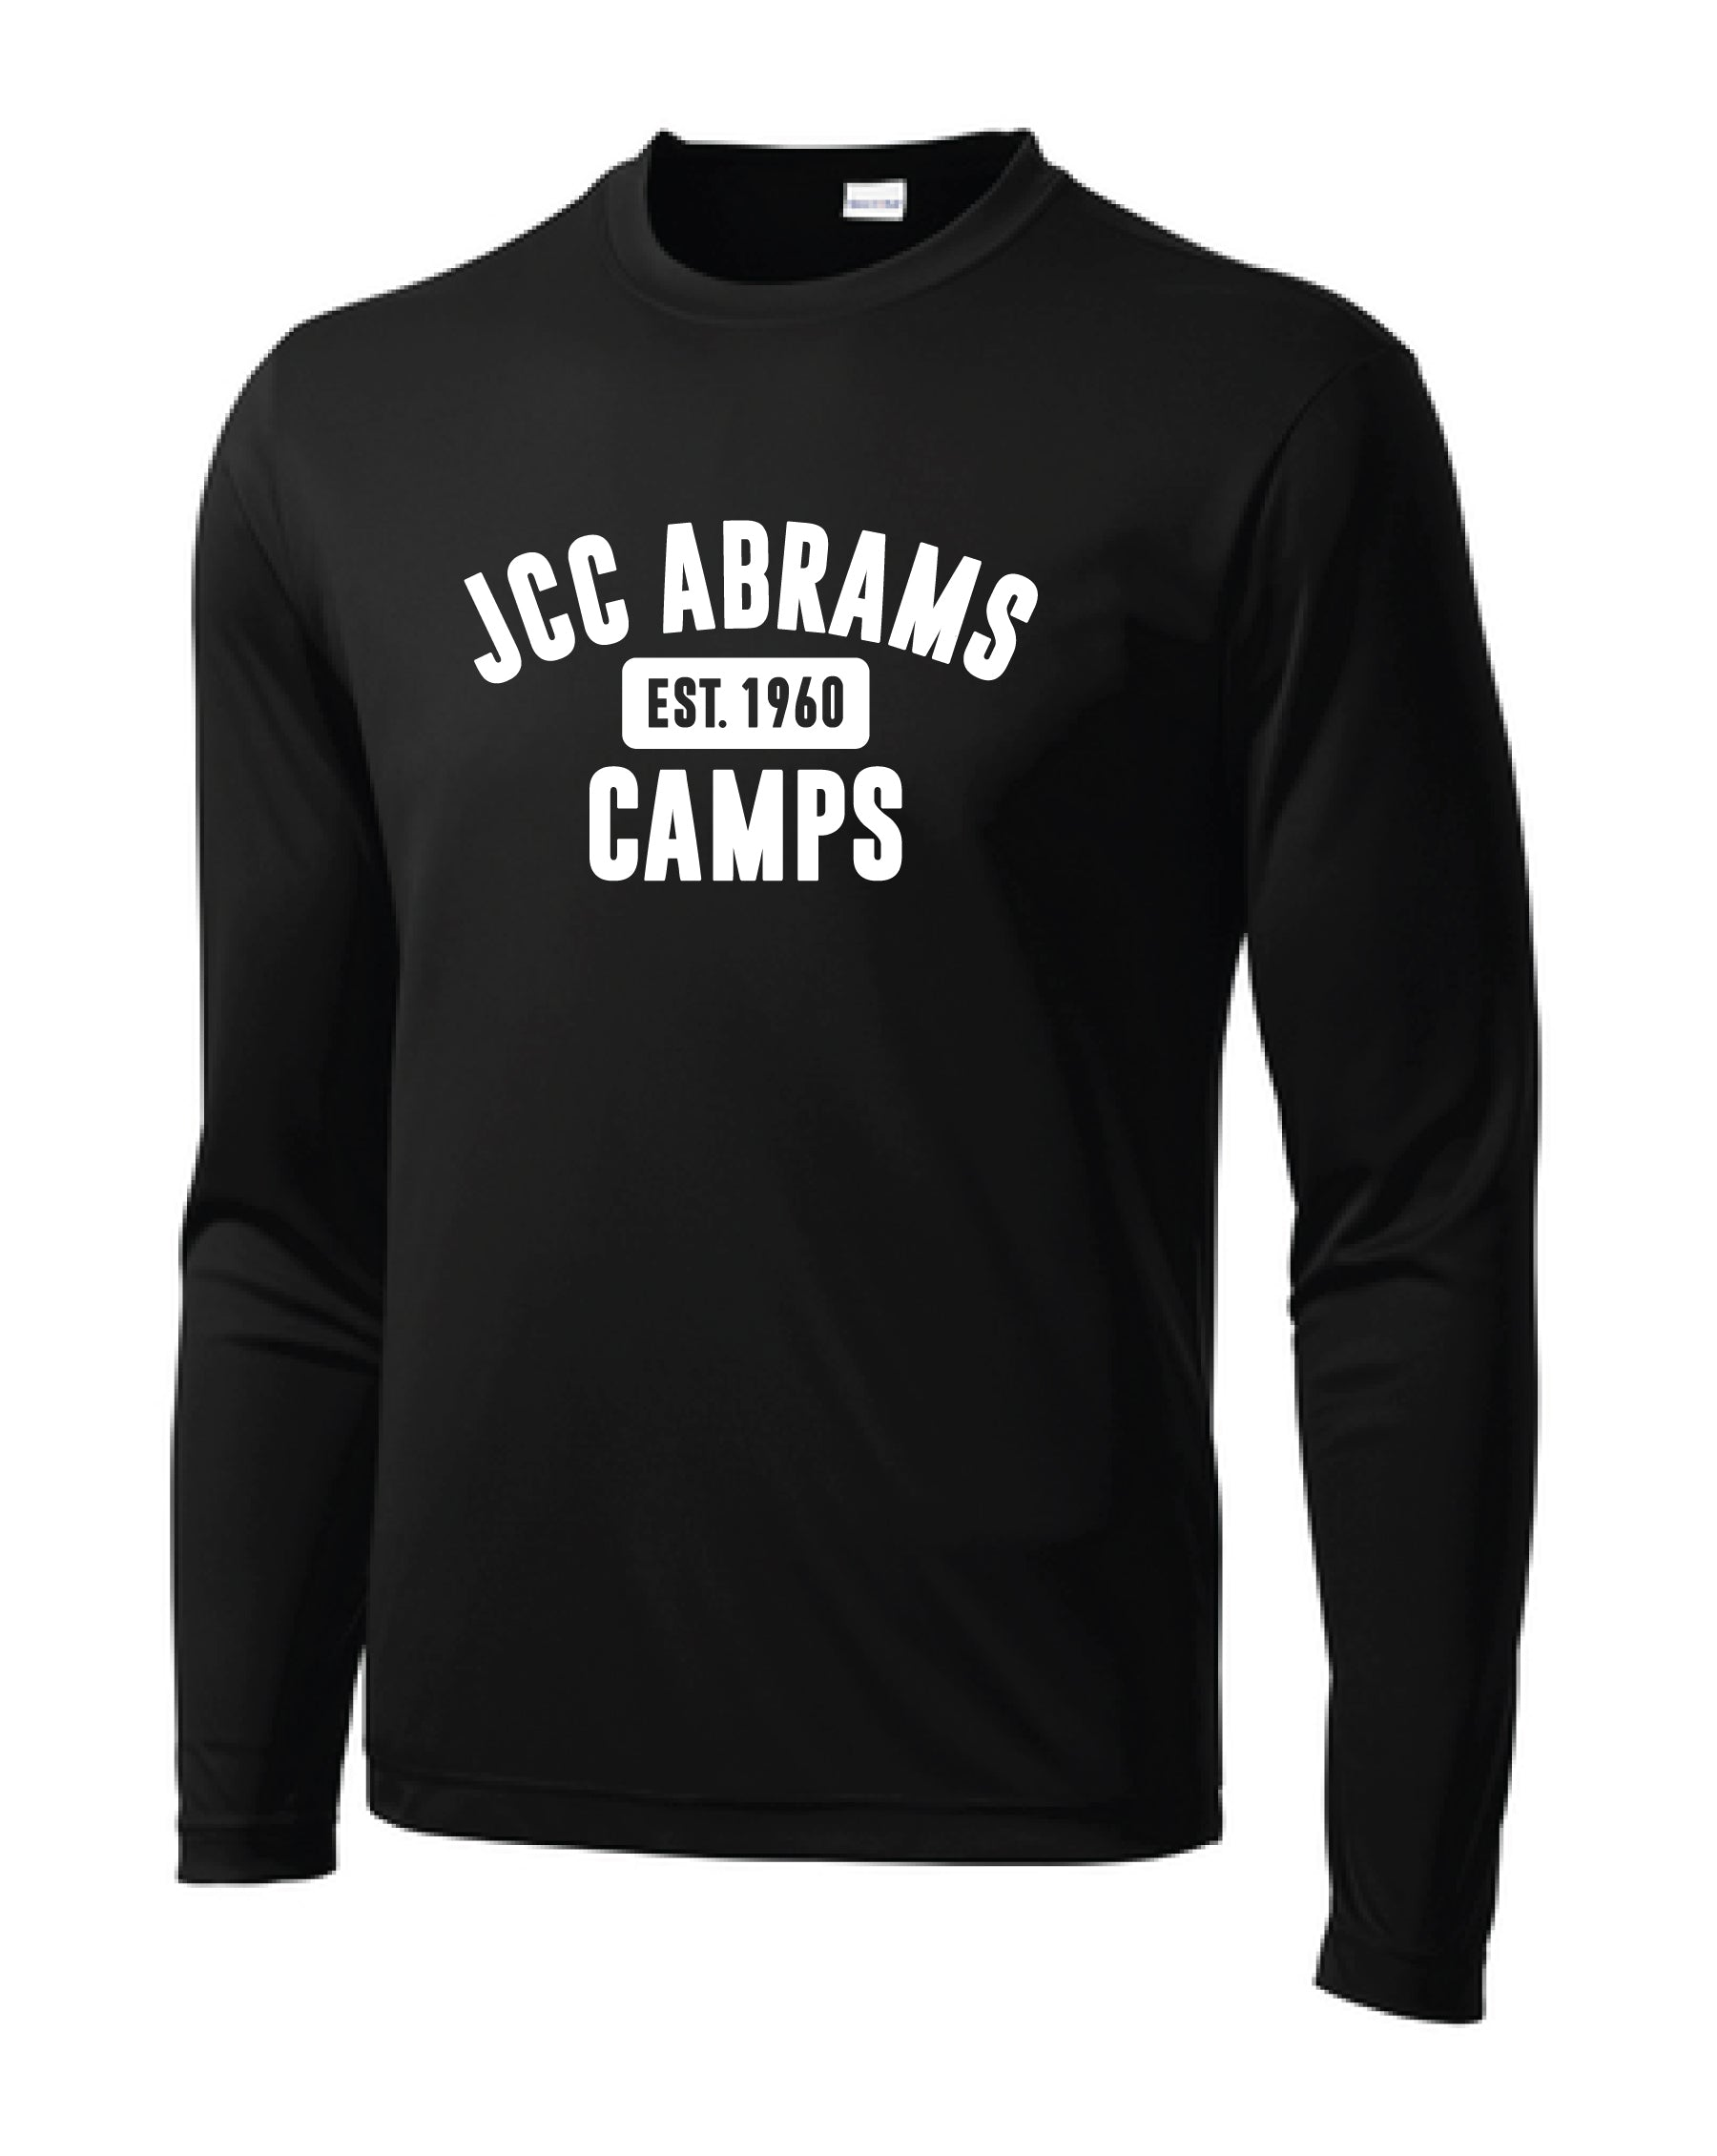 Long Sleeve Performance Shirt - Adult Unisex and Youth